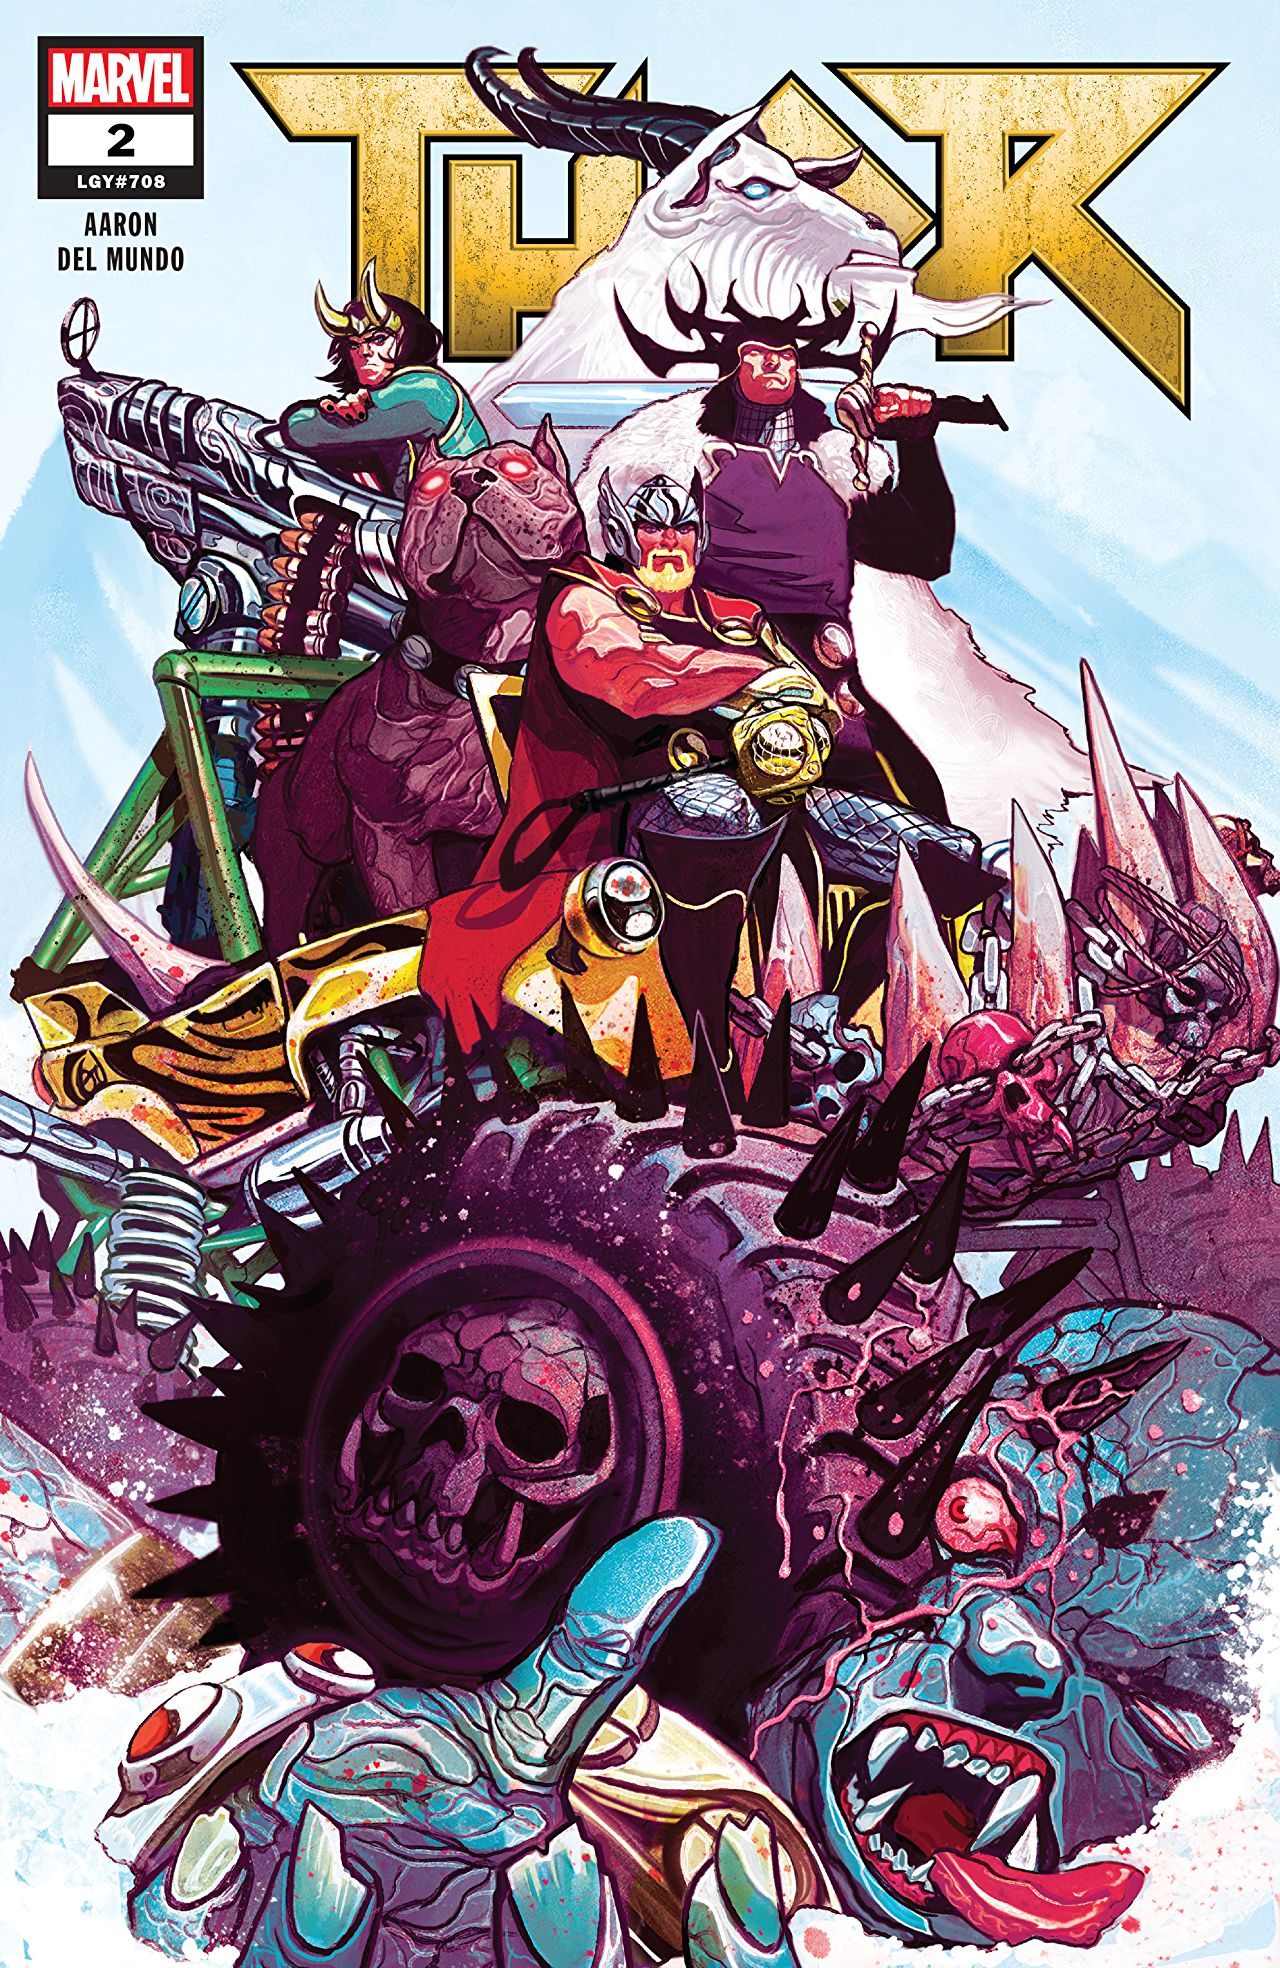 Thor 2 comic book review by Marvel comics